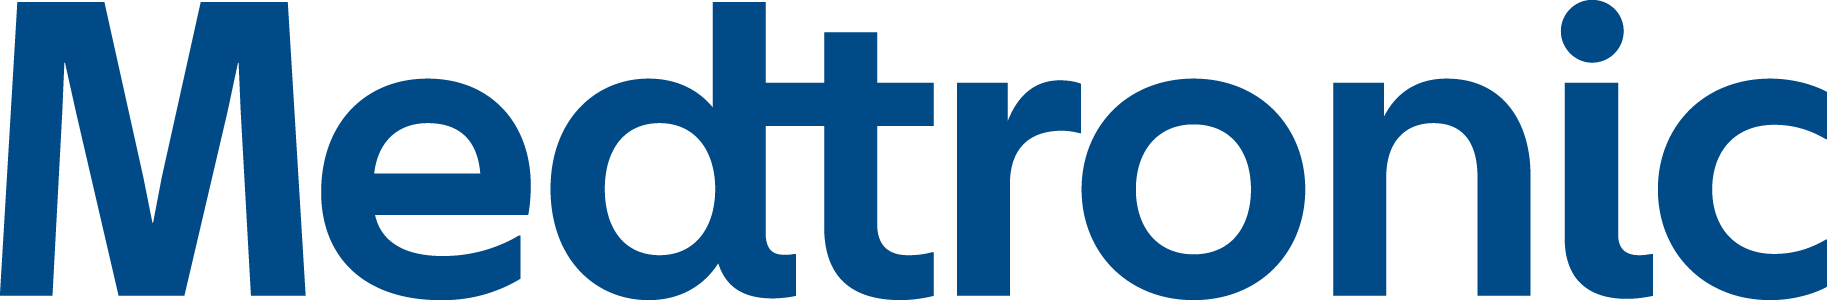 medtronic-logo-new